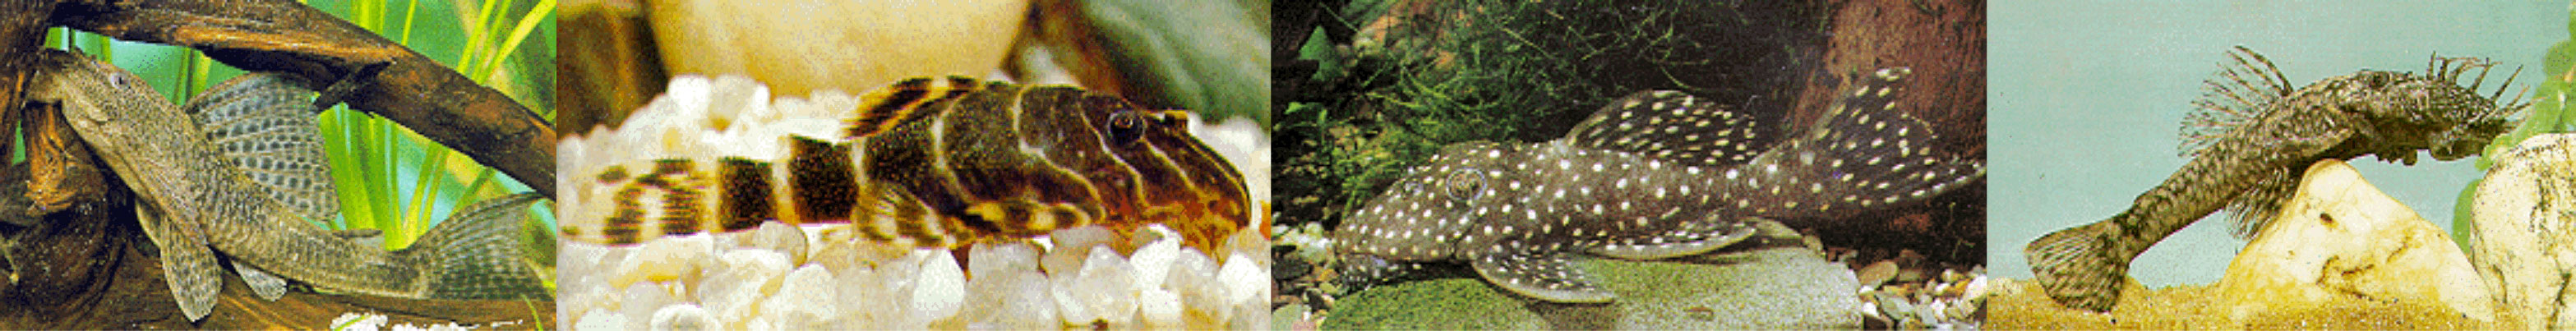 plecostomus-gold-nugget-clown-bristle-nosed-and-regular-montage